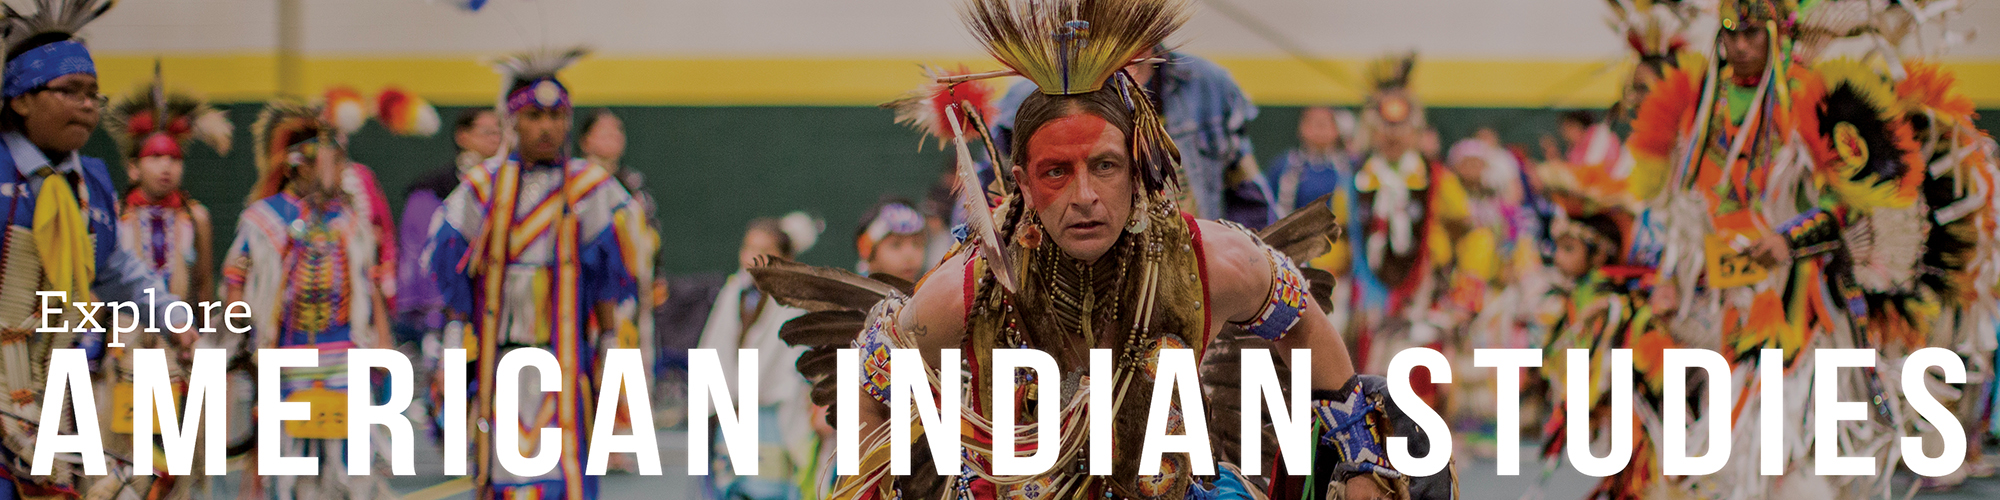 American Indian Studies at BHSU